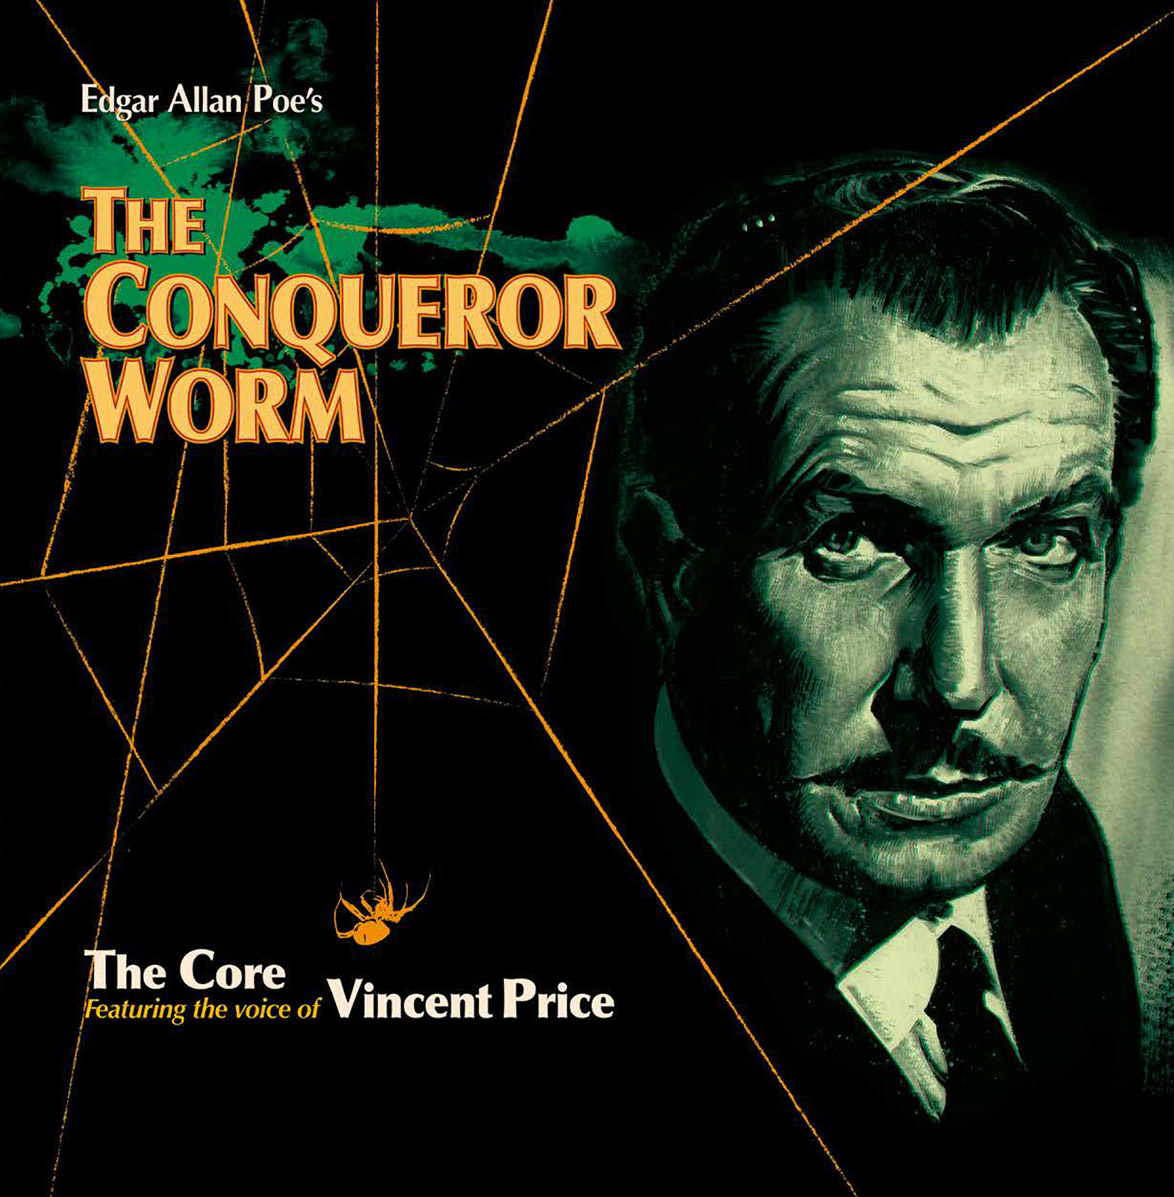 The Conqueror Worm Limited Edition 12″ Vinyl – Buy Now